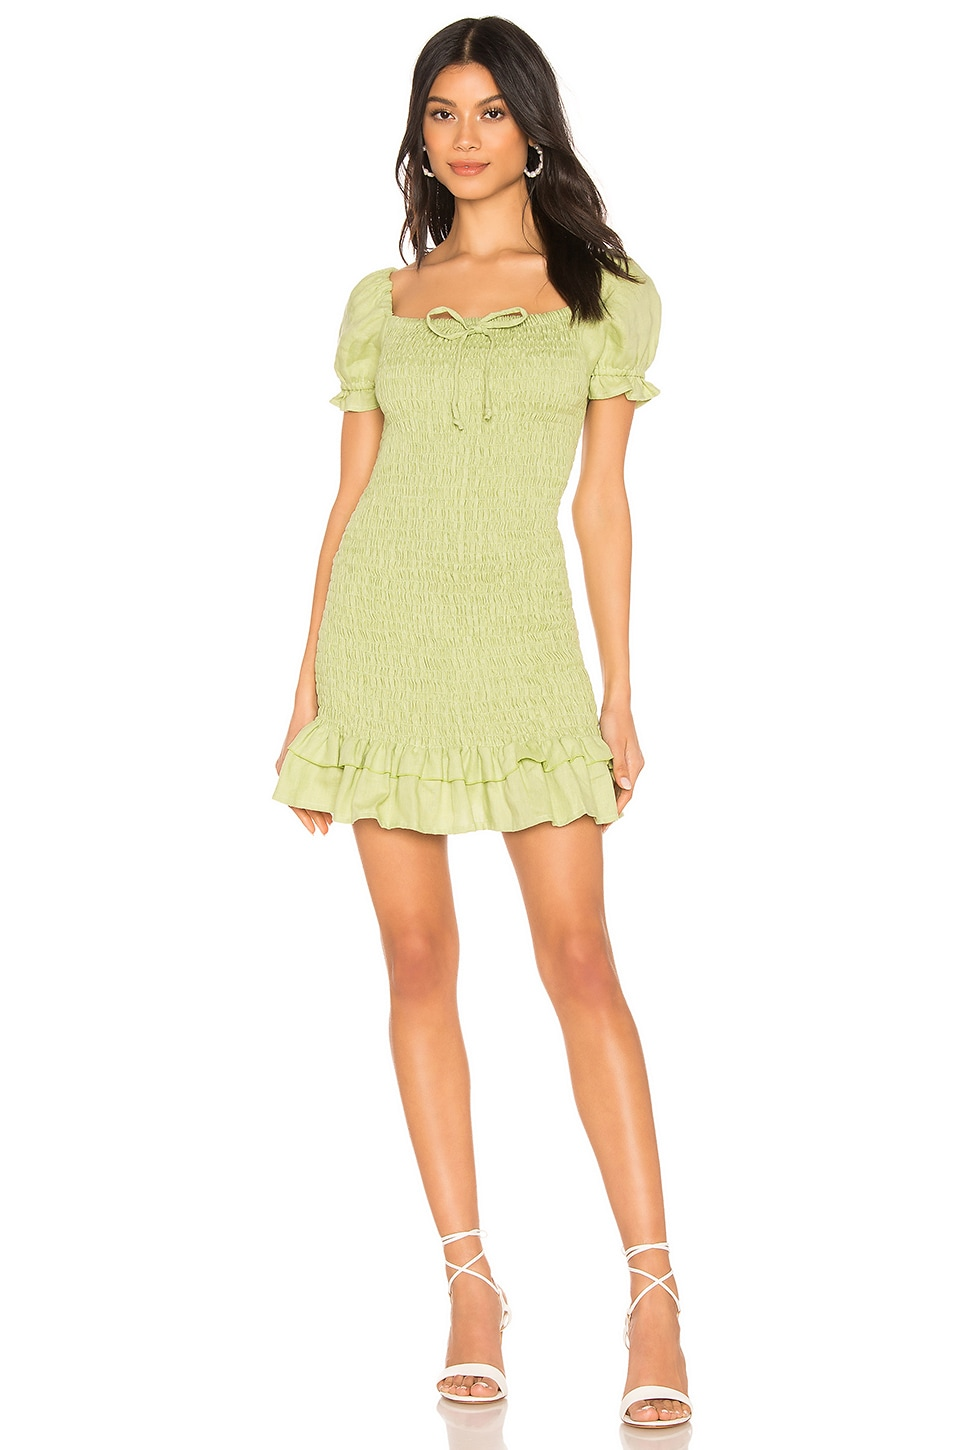 FAITHFULL THE BRAND Cette Dress in Washed Lime